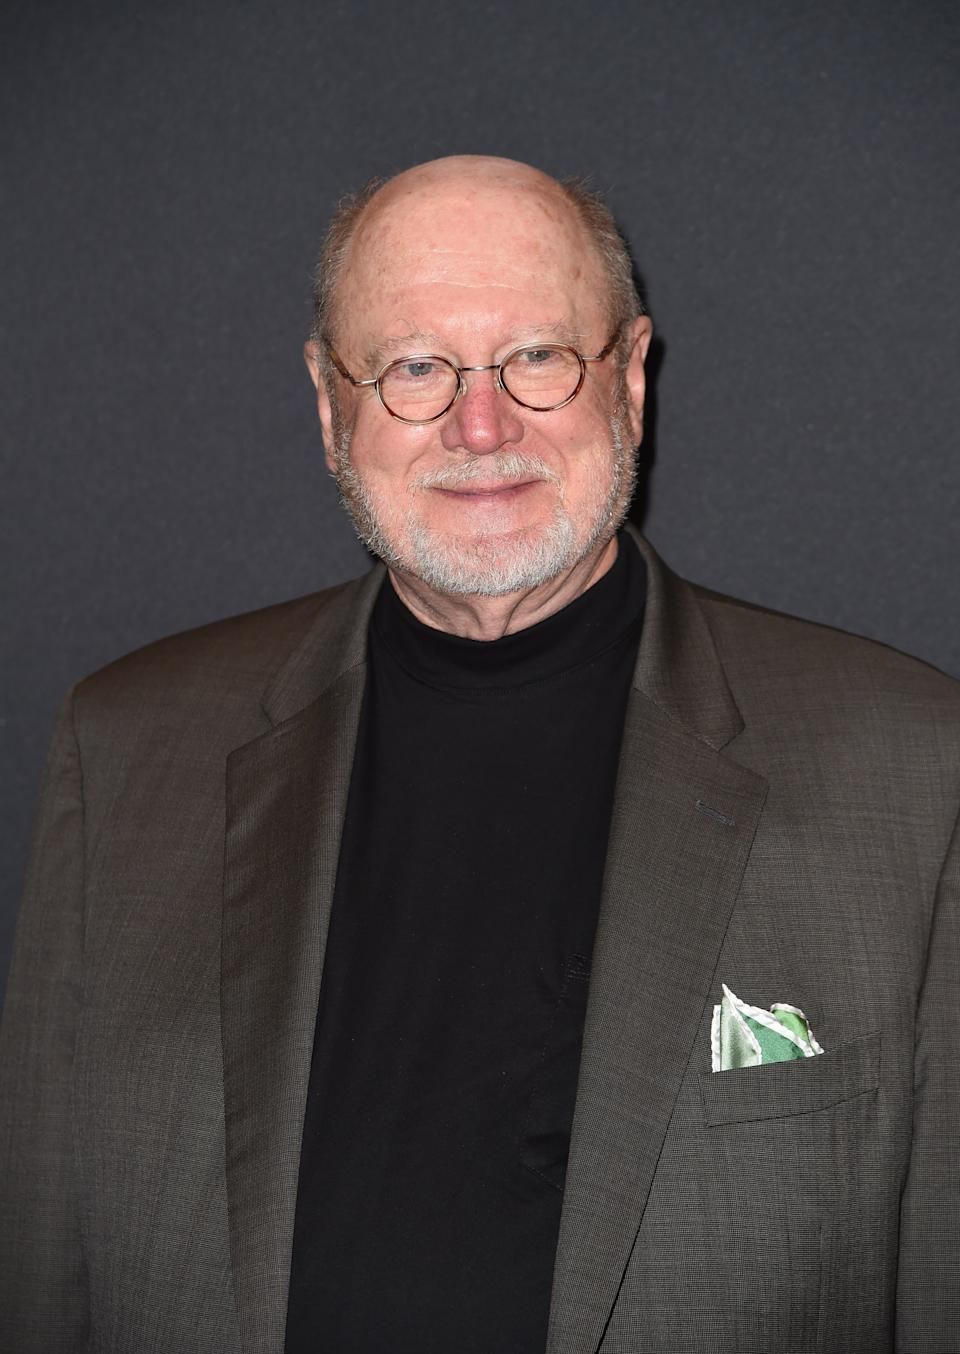 """<strong>David Ogden Stiers</strong><br /><strong>Actor (b. 1942)<br /><br /></strong>The American star, best known for playing Major Charles Emerson Winchester in the US war-based comedyM*A*S*H, <a href=""""http://www.huffingtonpost.co.uk/entry/david-ogden-stiers-dead-dies-mash-disney-voiceover-beauty-and-the-beast-cogsworth_uk_5a9bc5a9e4b089ec353b1315"""">lost his battle with bladder cancer.</a><strong><br /></strong>"""